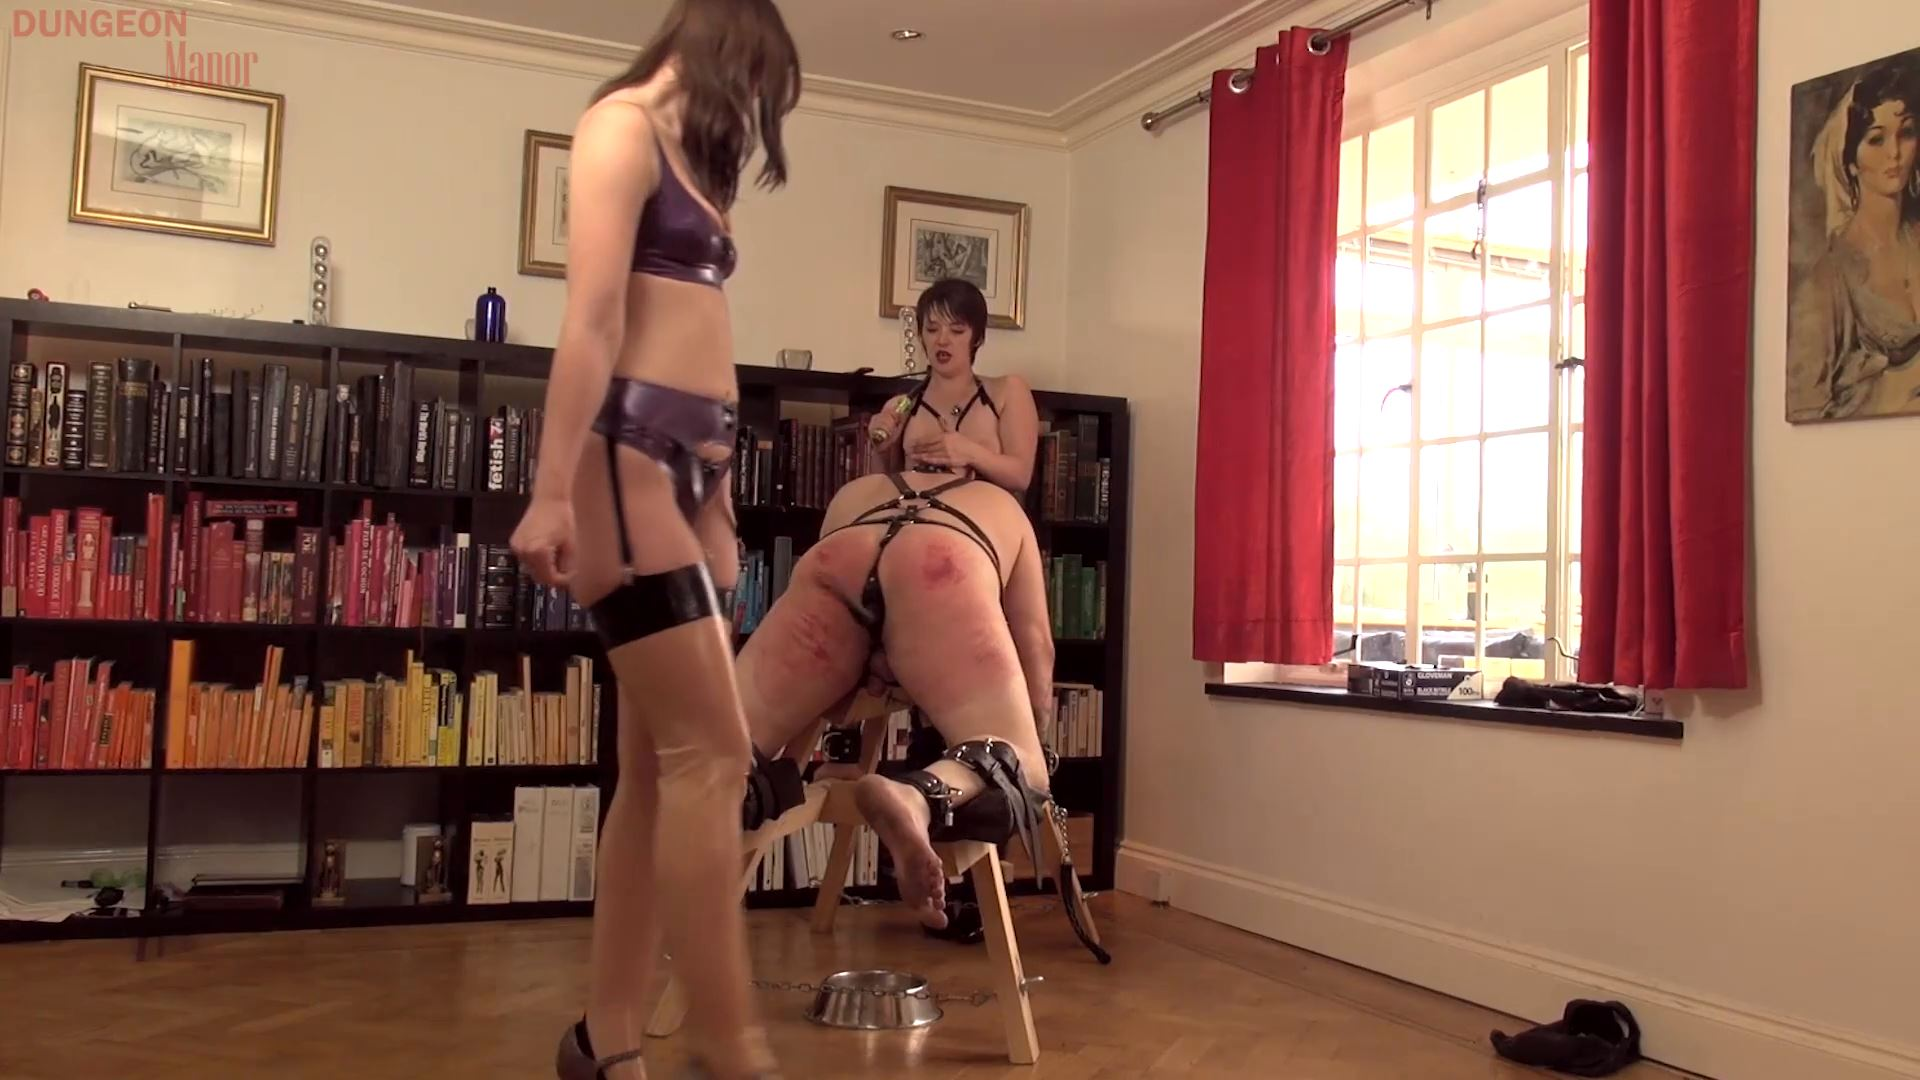 A dungeon Manor Production 397 - MISTRESS EVILYNE - FULL HD/1080p/MP4